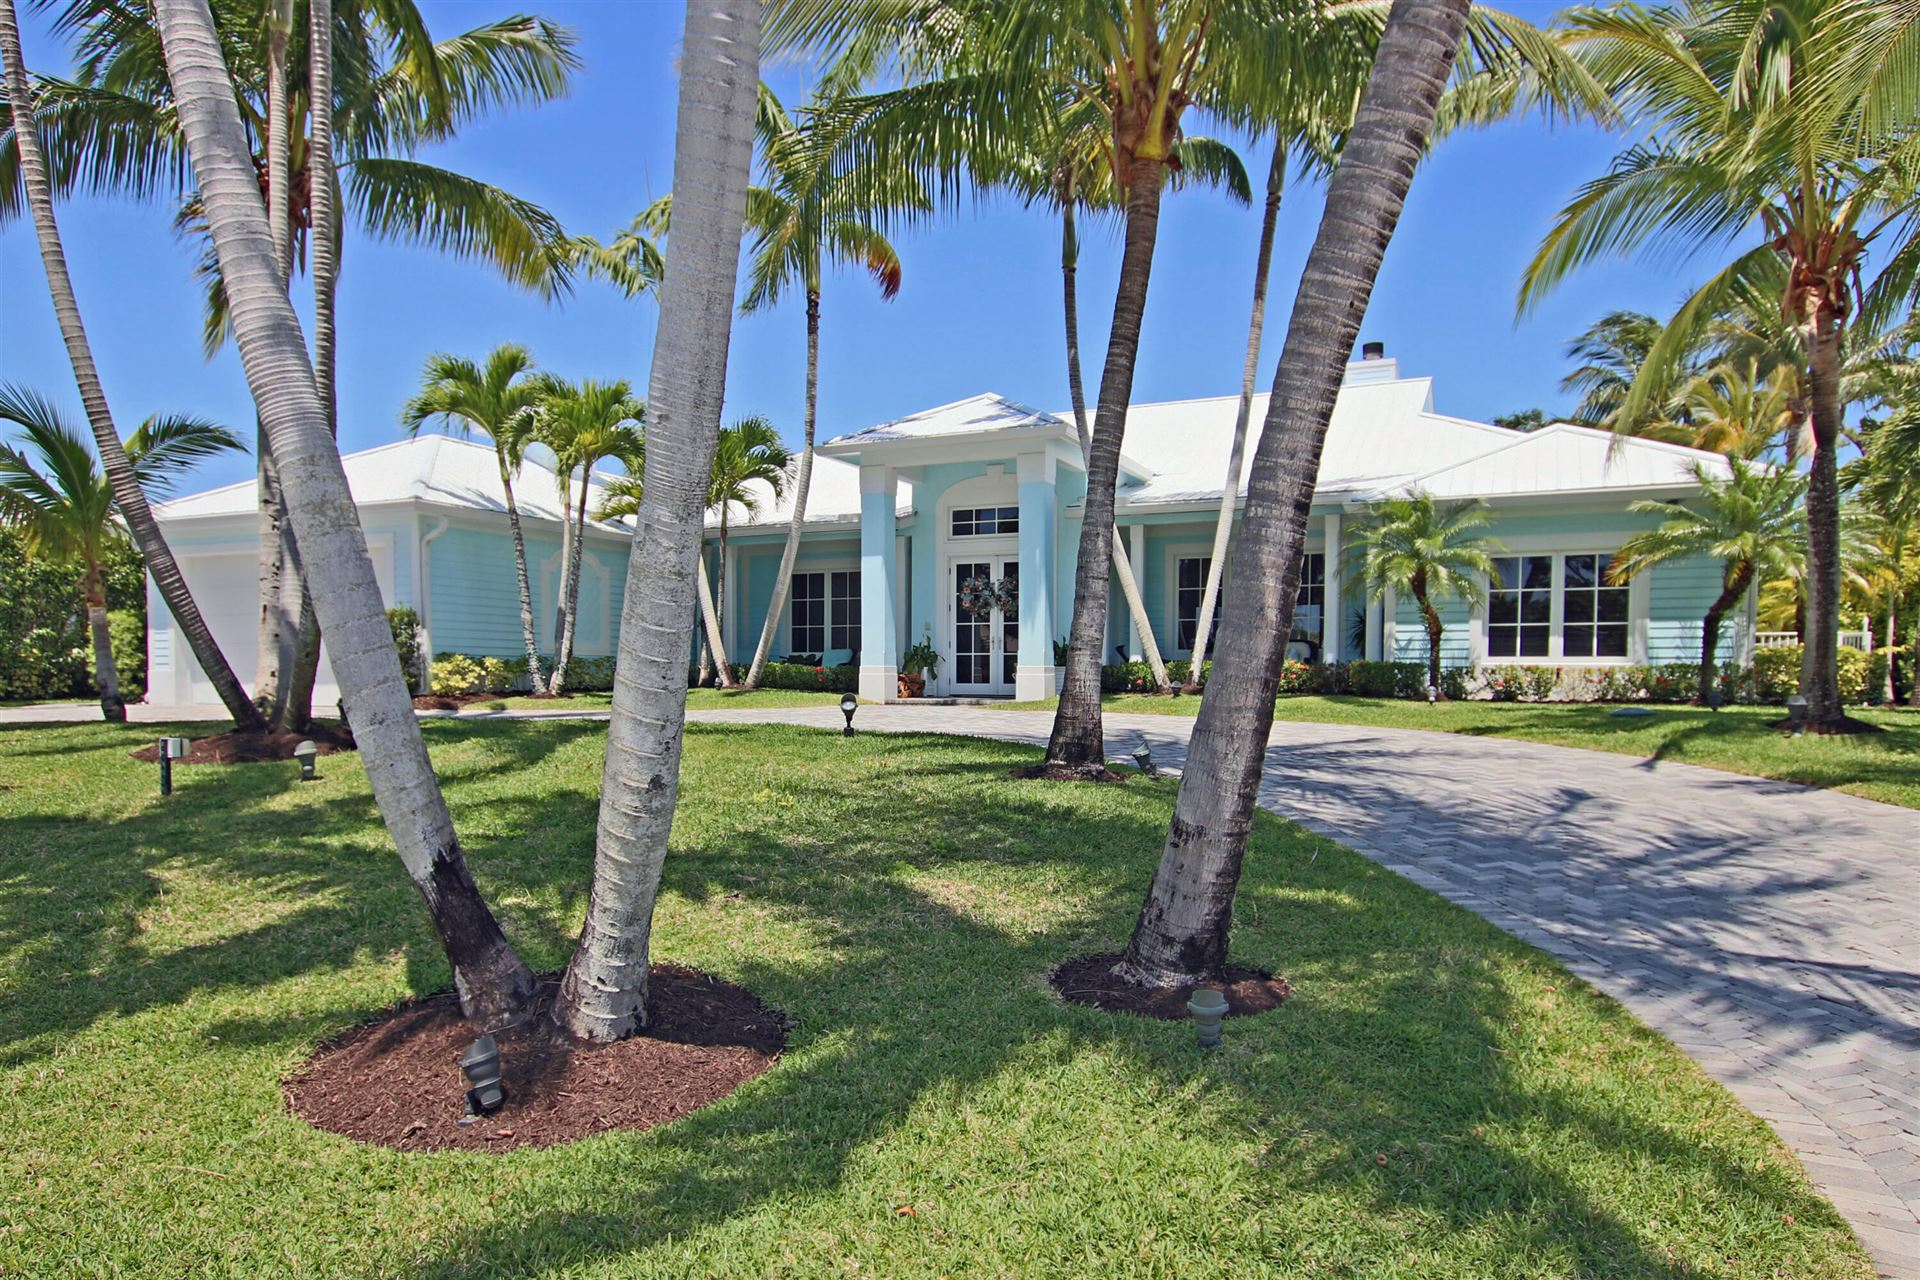 Photo of 11 Bunker Place, Tequesta, FL 33469 (MLS # RX-10711938)